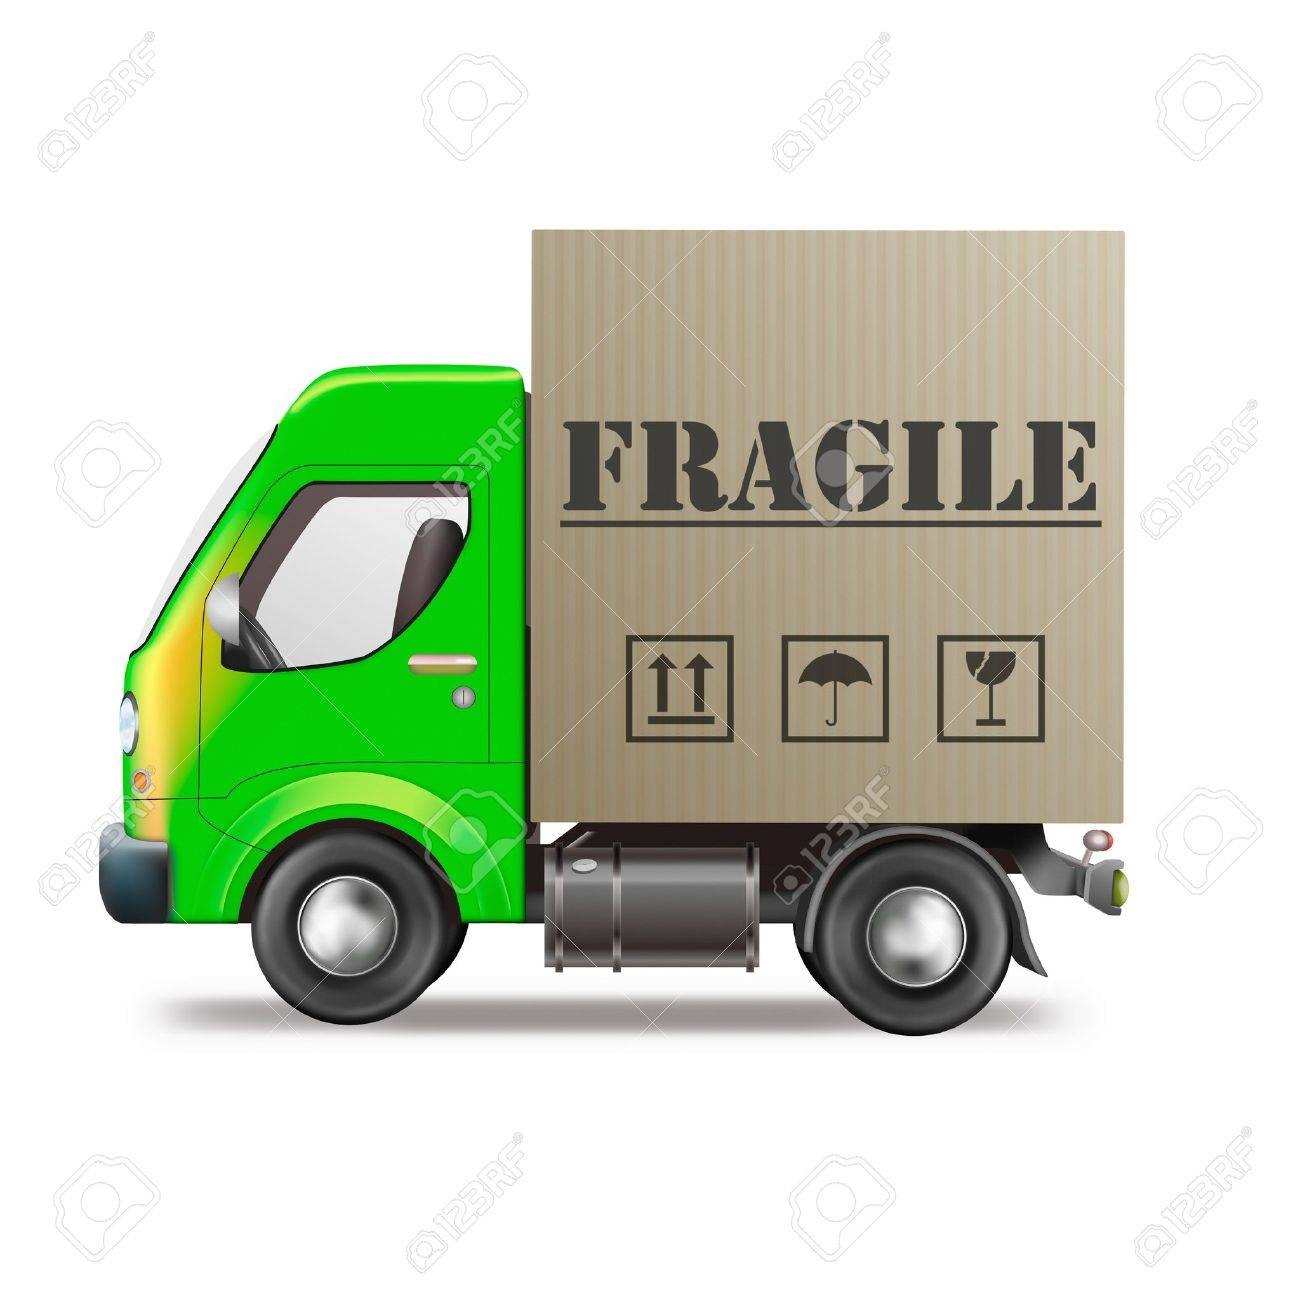 fragile delivery handle with care delivery truck with cardboard box breakable package or parcel sending careful transportation Stock Photo - 9387512